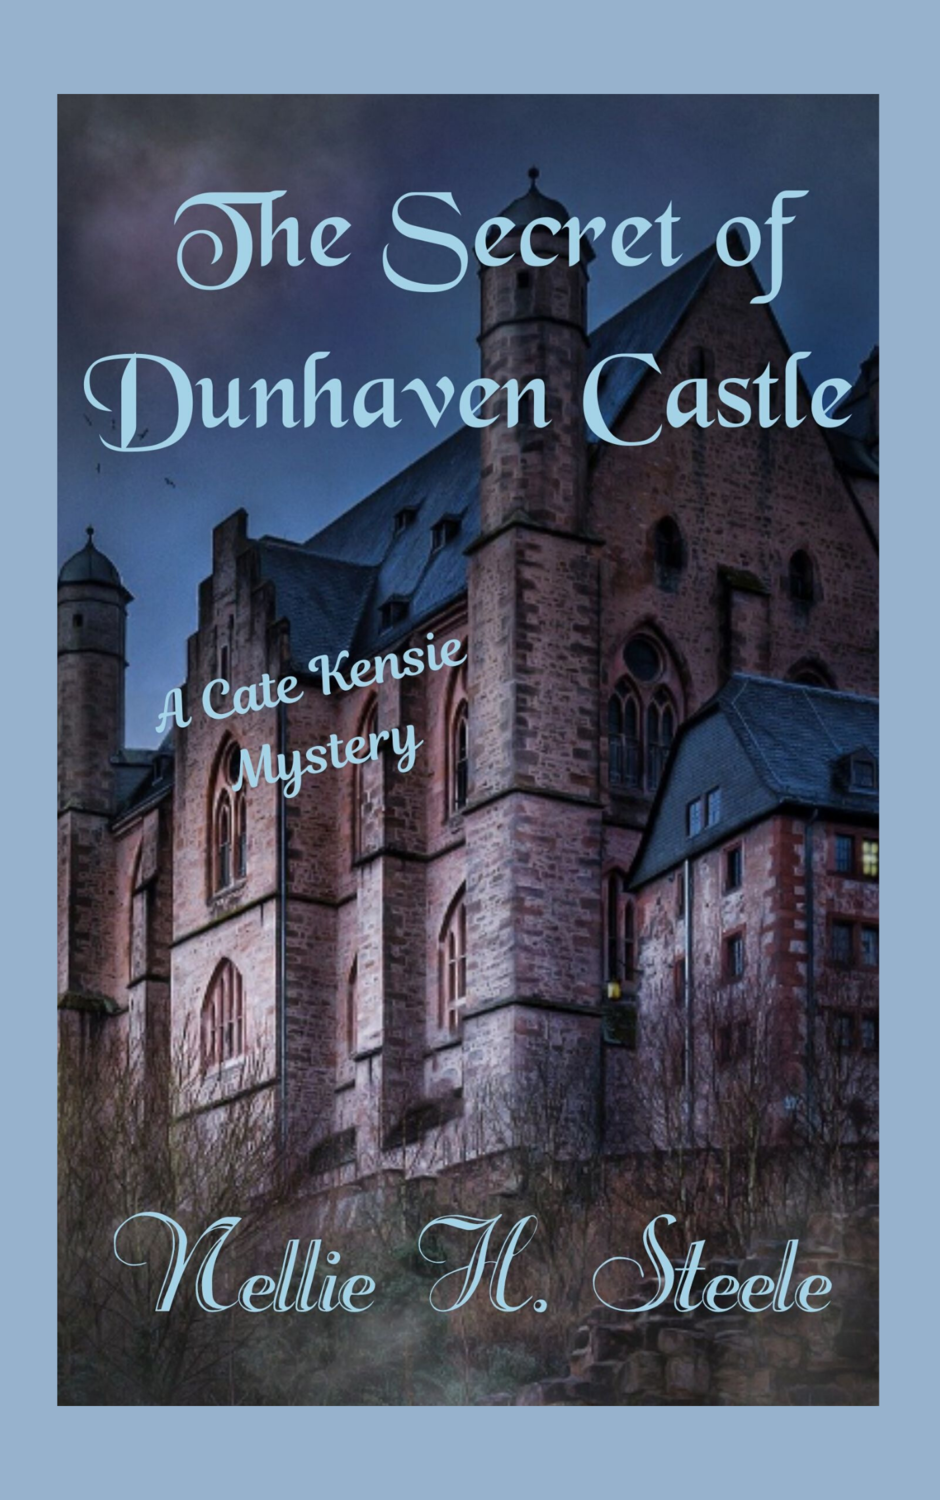 Personalized Signed Copy - The Secret of Dunhaven Castle